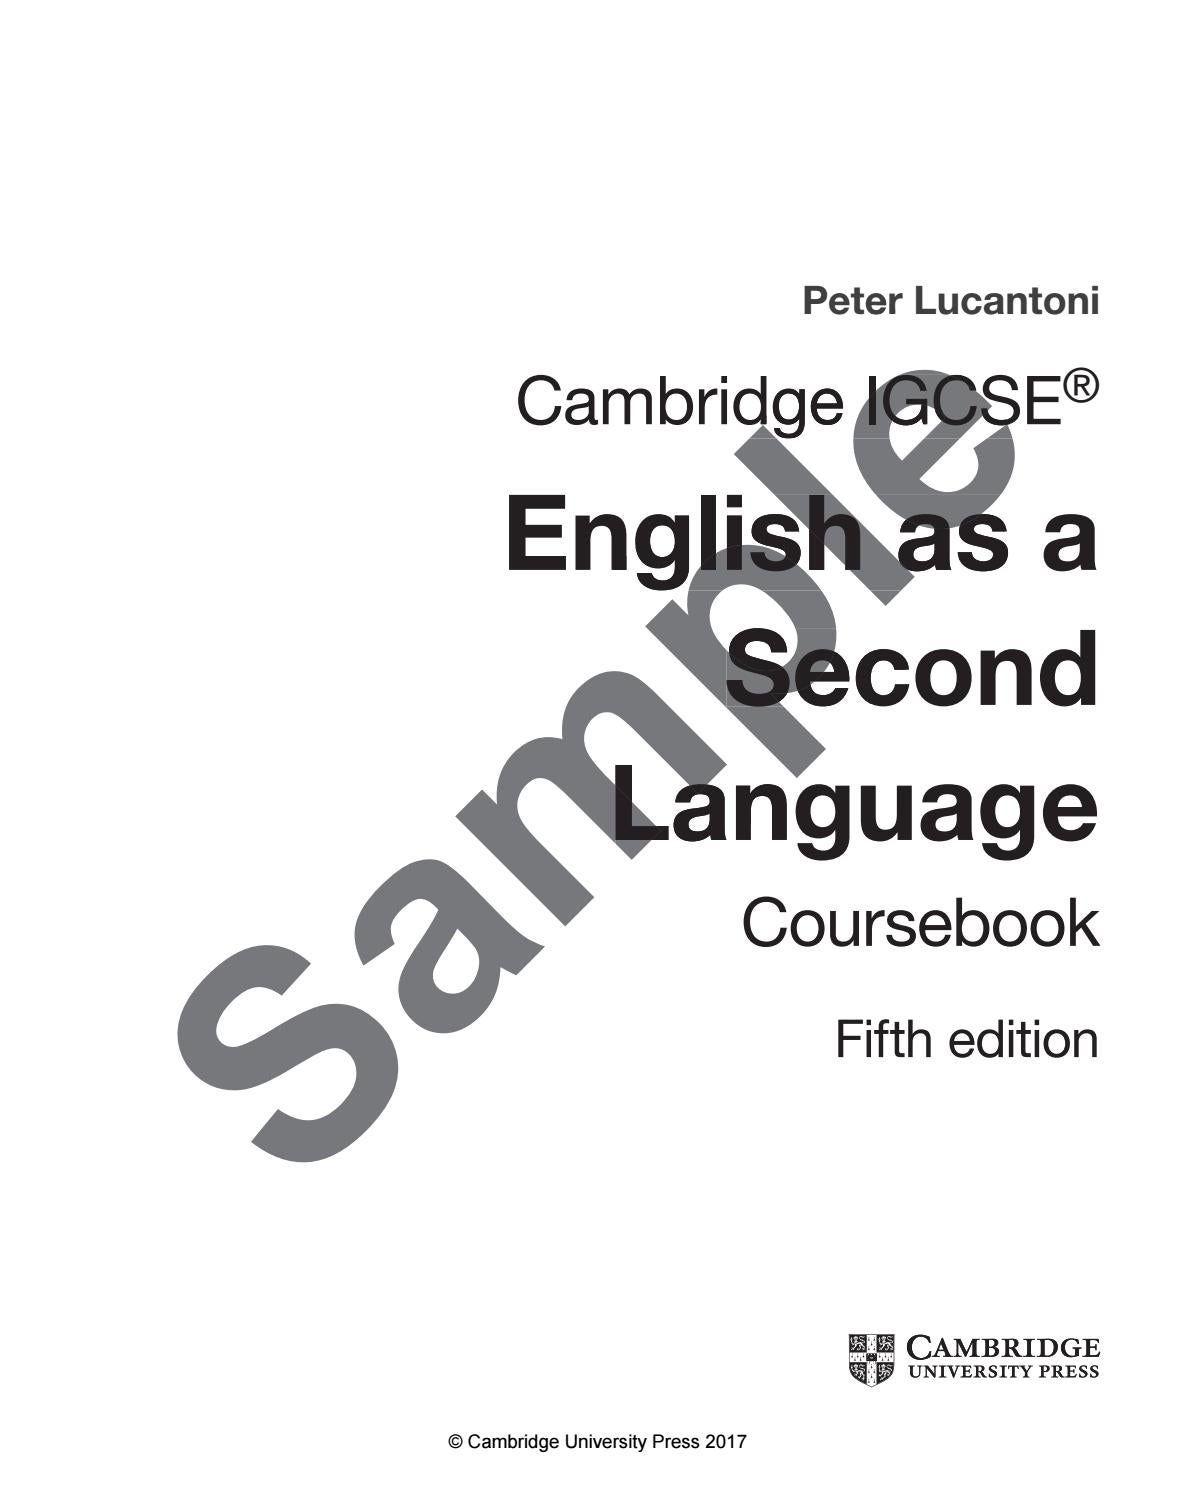 Preview Cambridge IGCSE English as a Second Language by